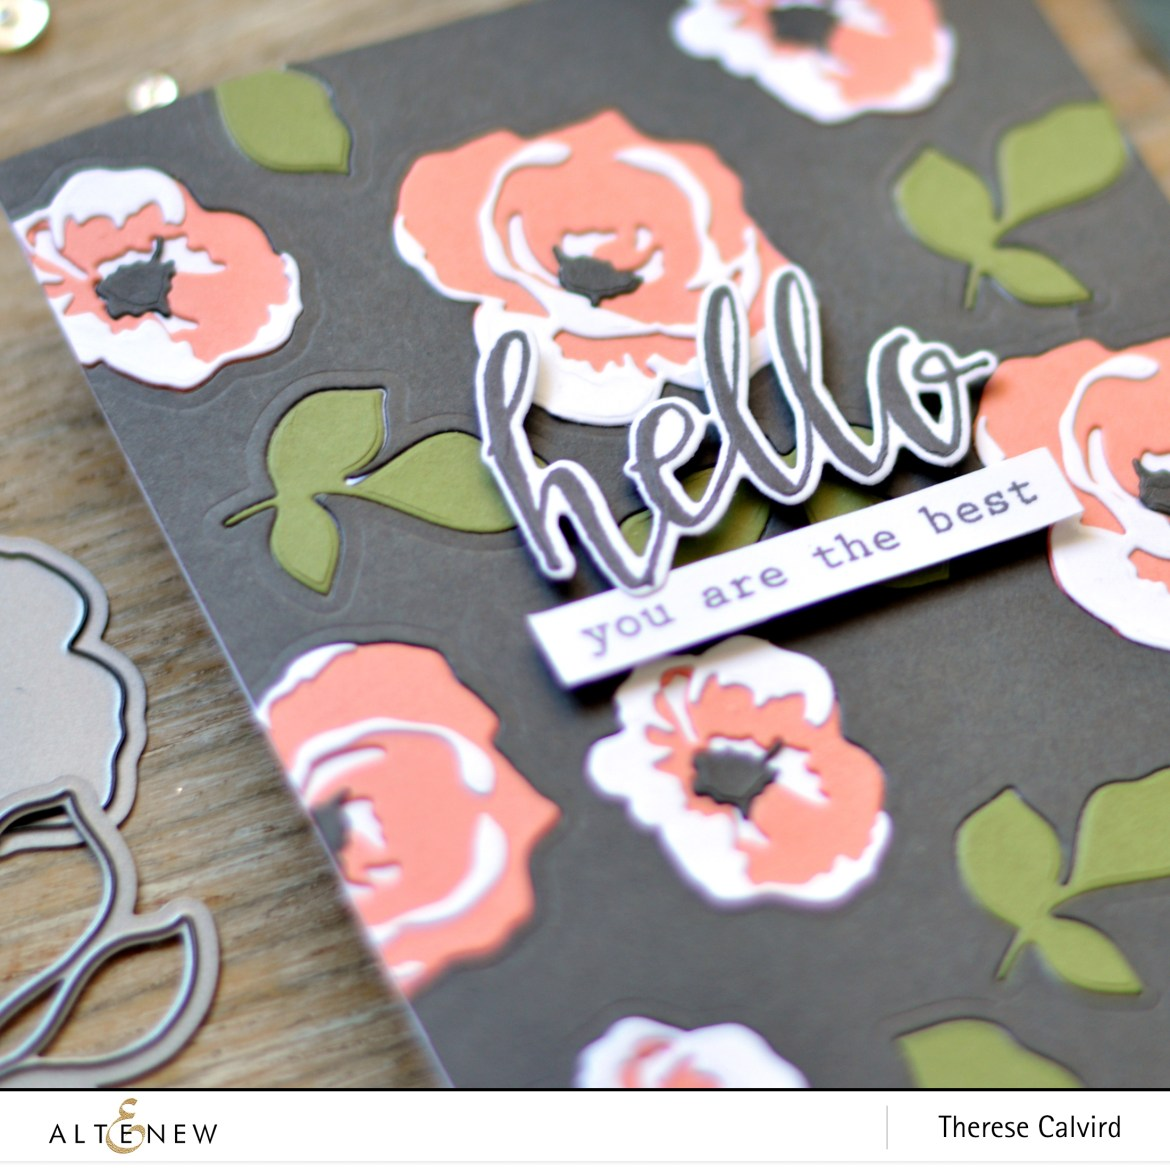 Altenew - Garden Picks 3D Die - Take 2 with Therese - Lostinpaper (card video) 1 copy